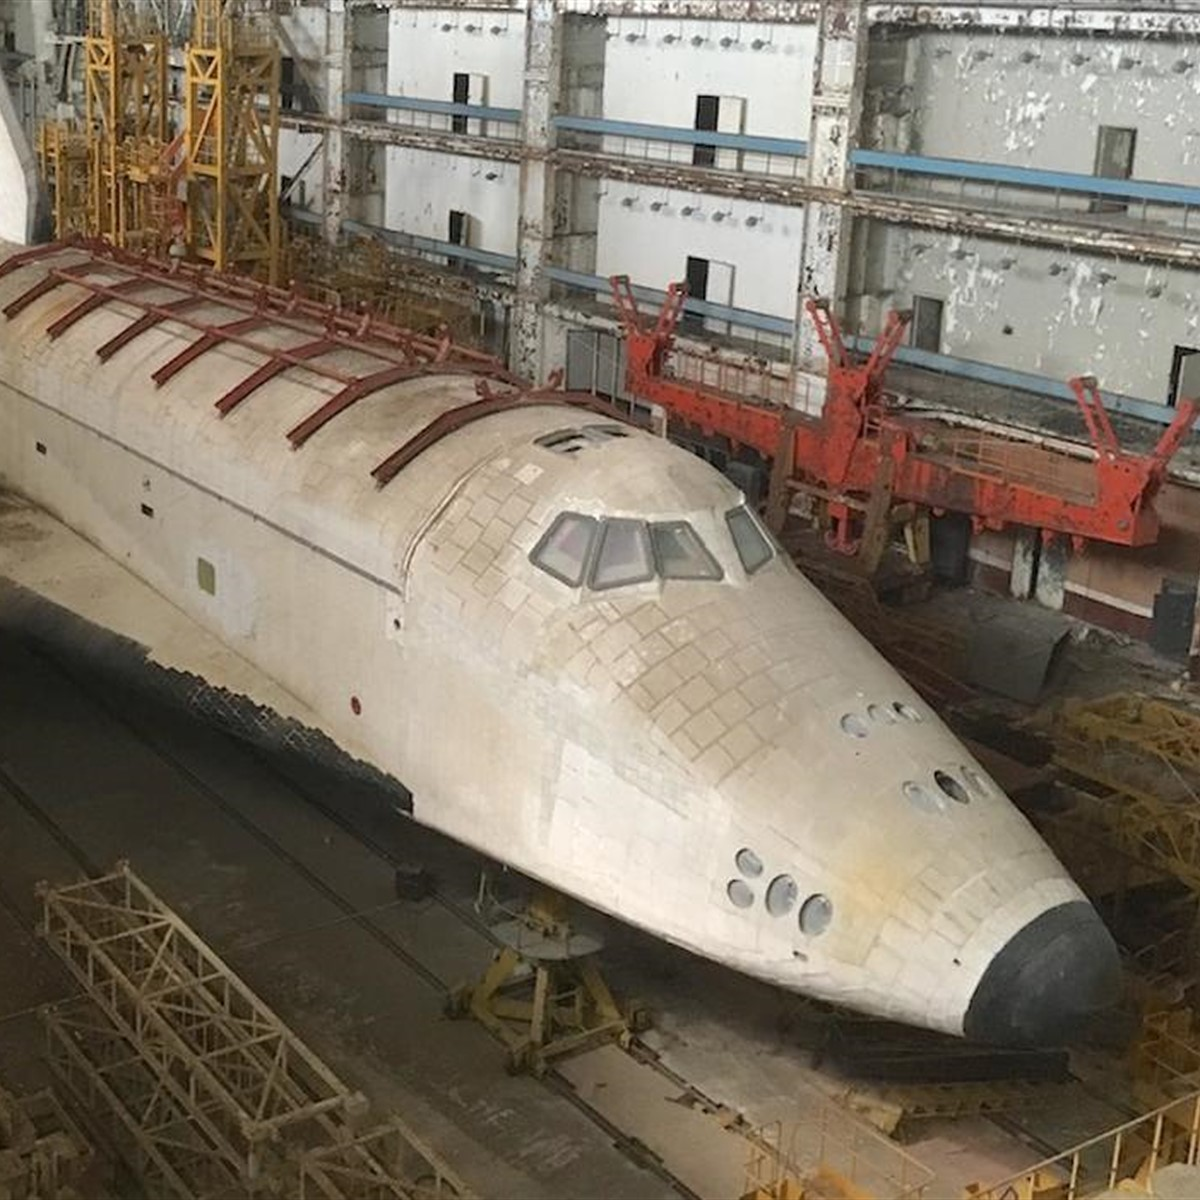 Photographing Abandoned Ussr Space Shuttles Made Me A Russian Target Power Relay Urbex Digital Photography Review